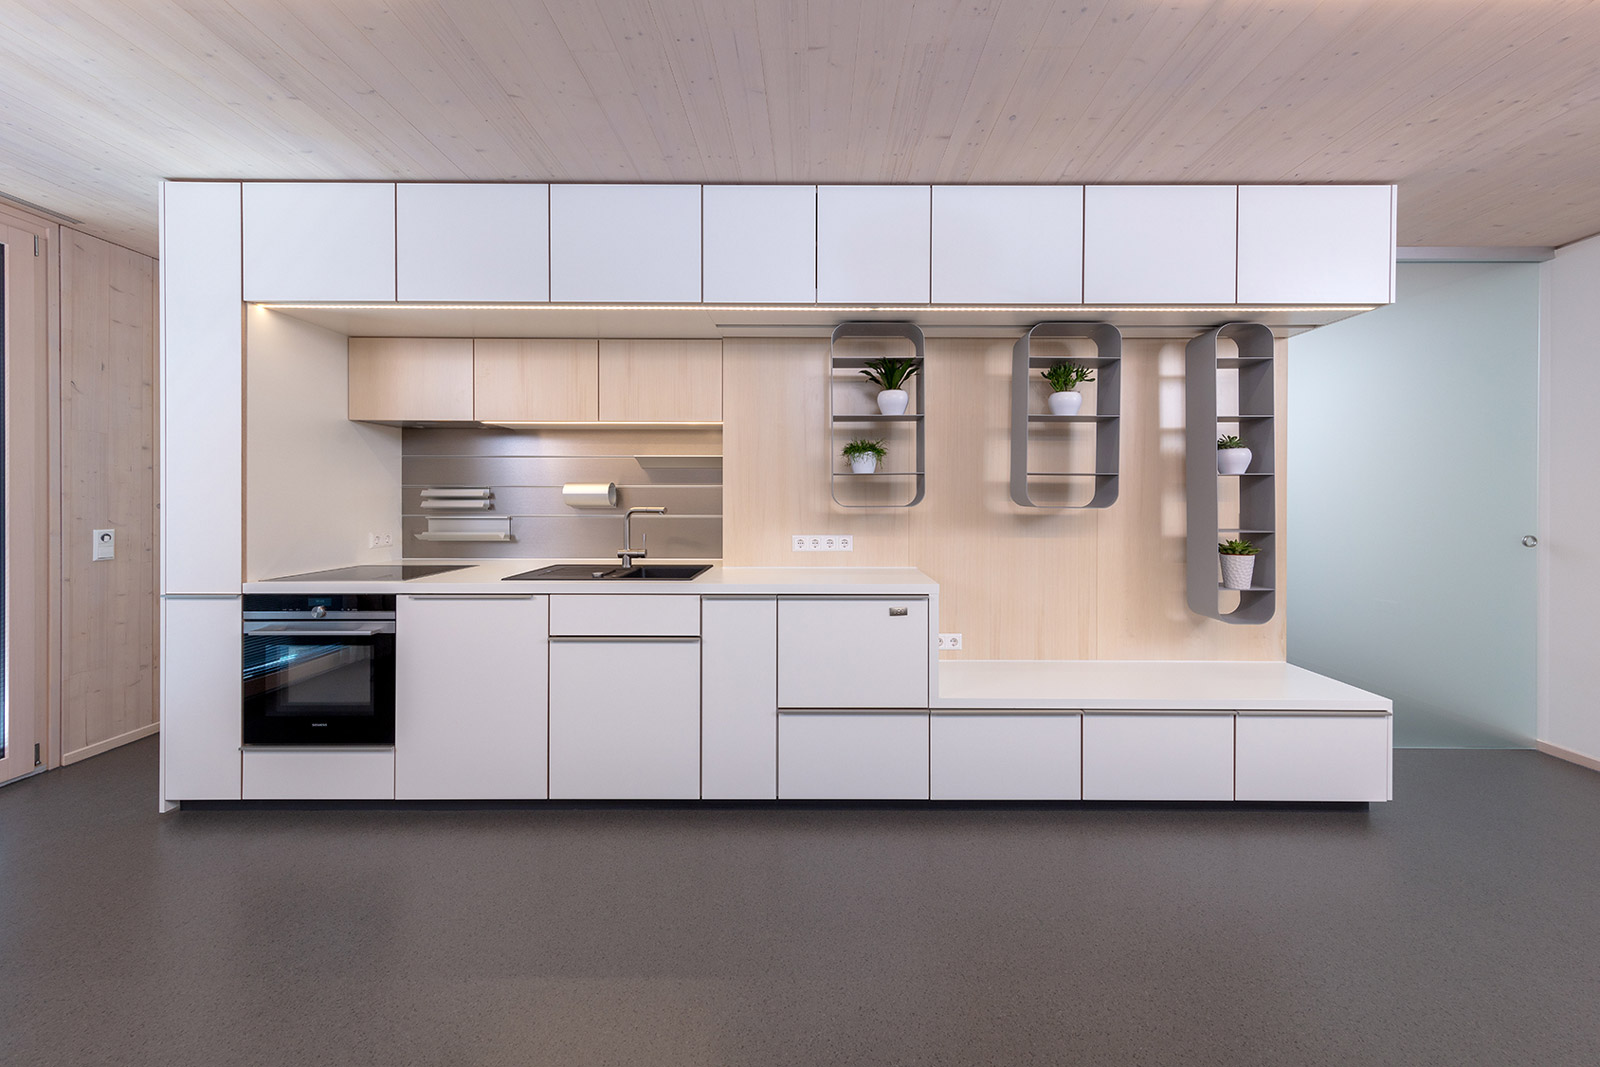 Skaiopartment Micro Living In Germany S First Wooden High